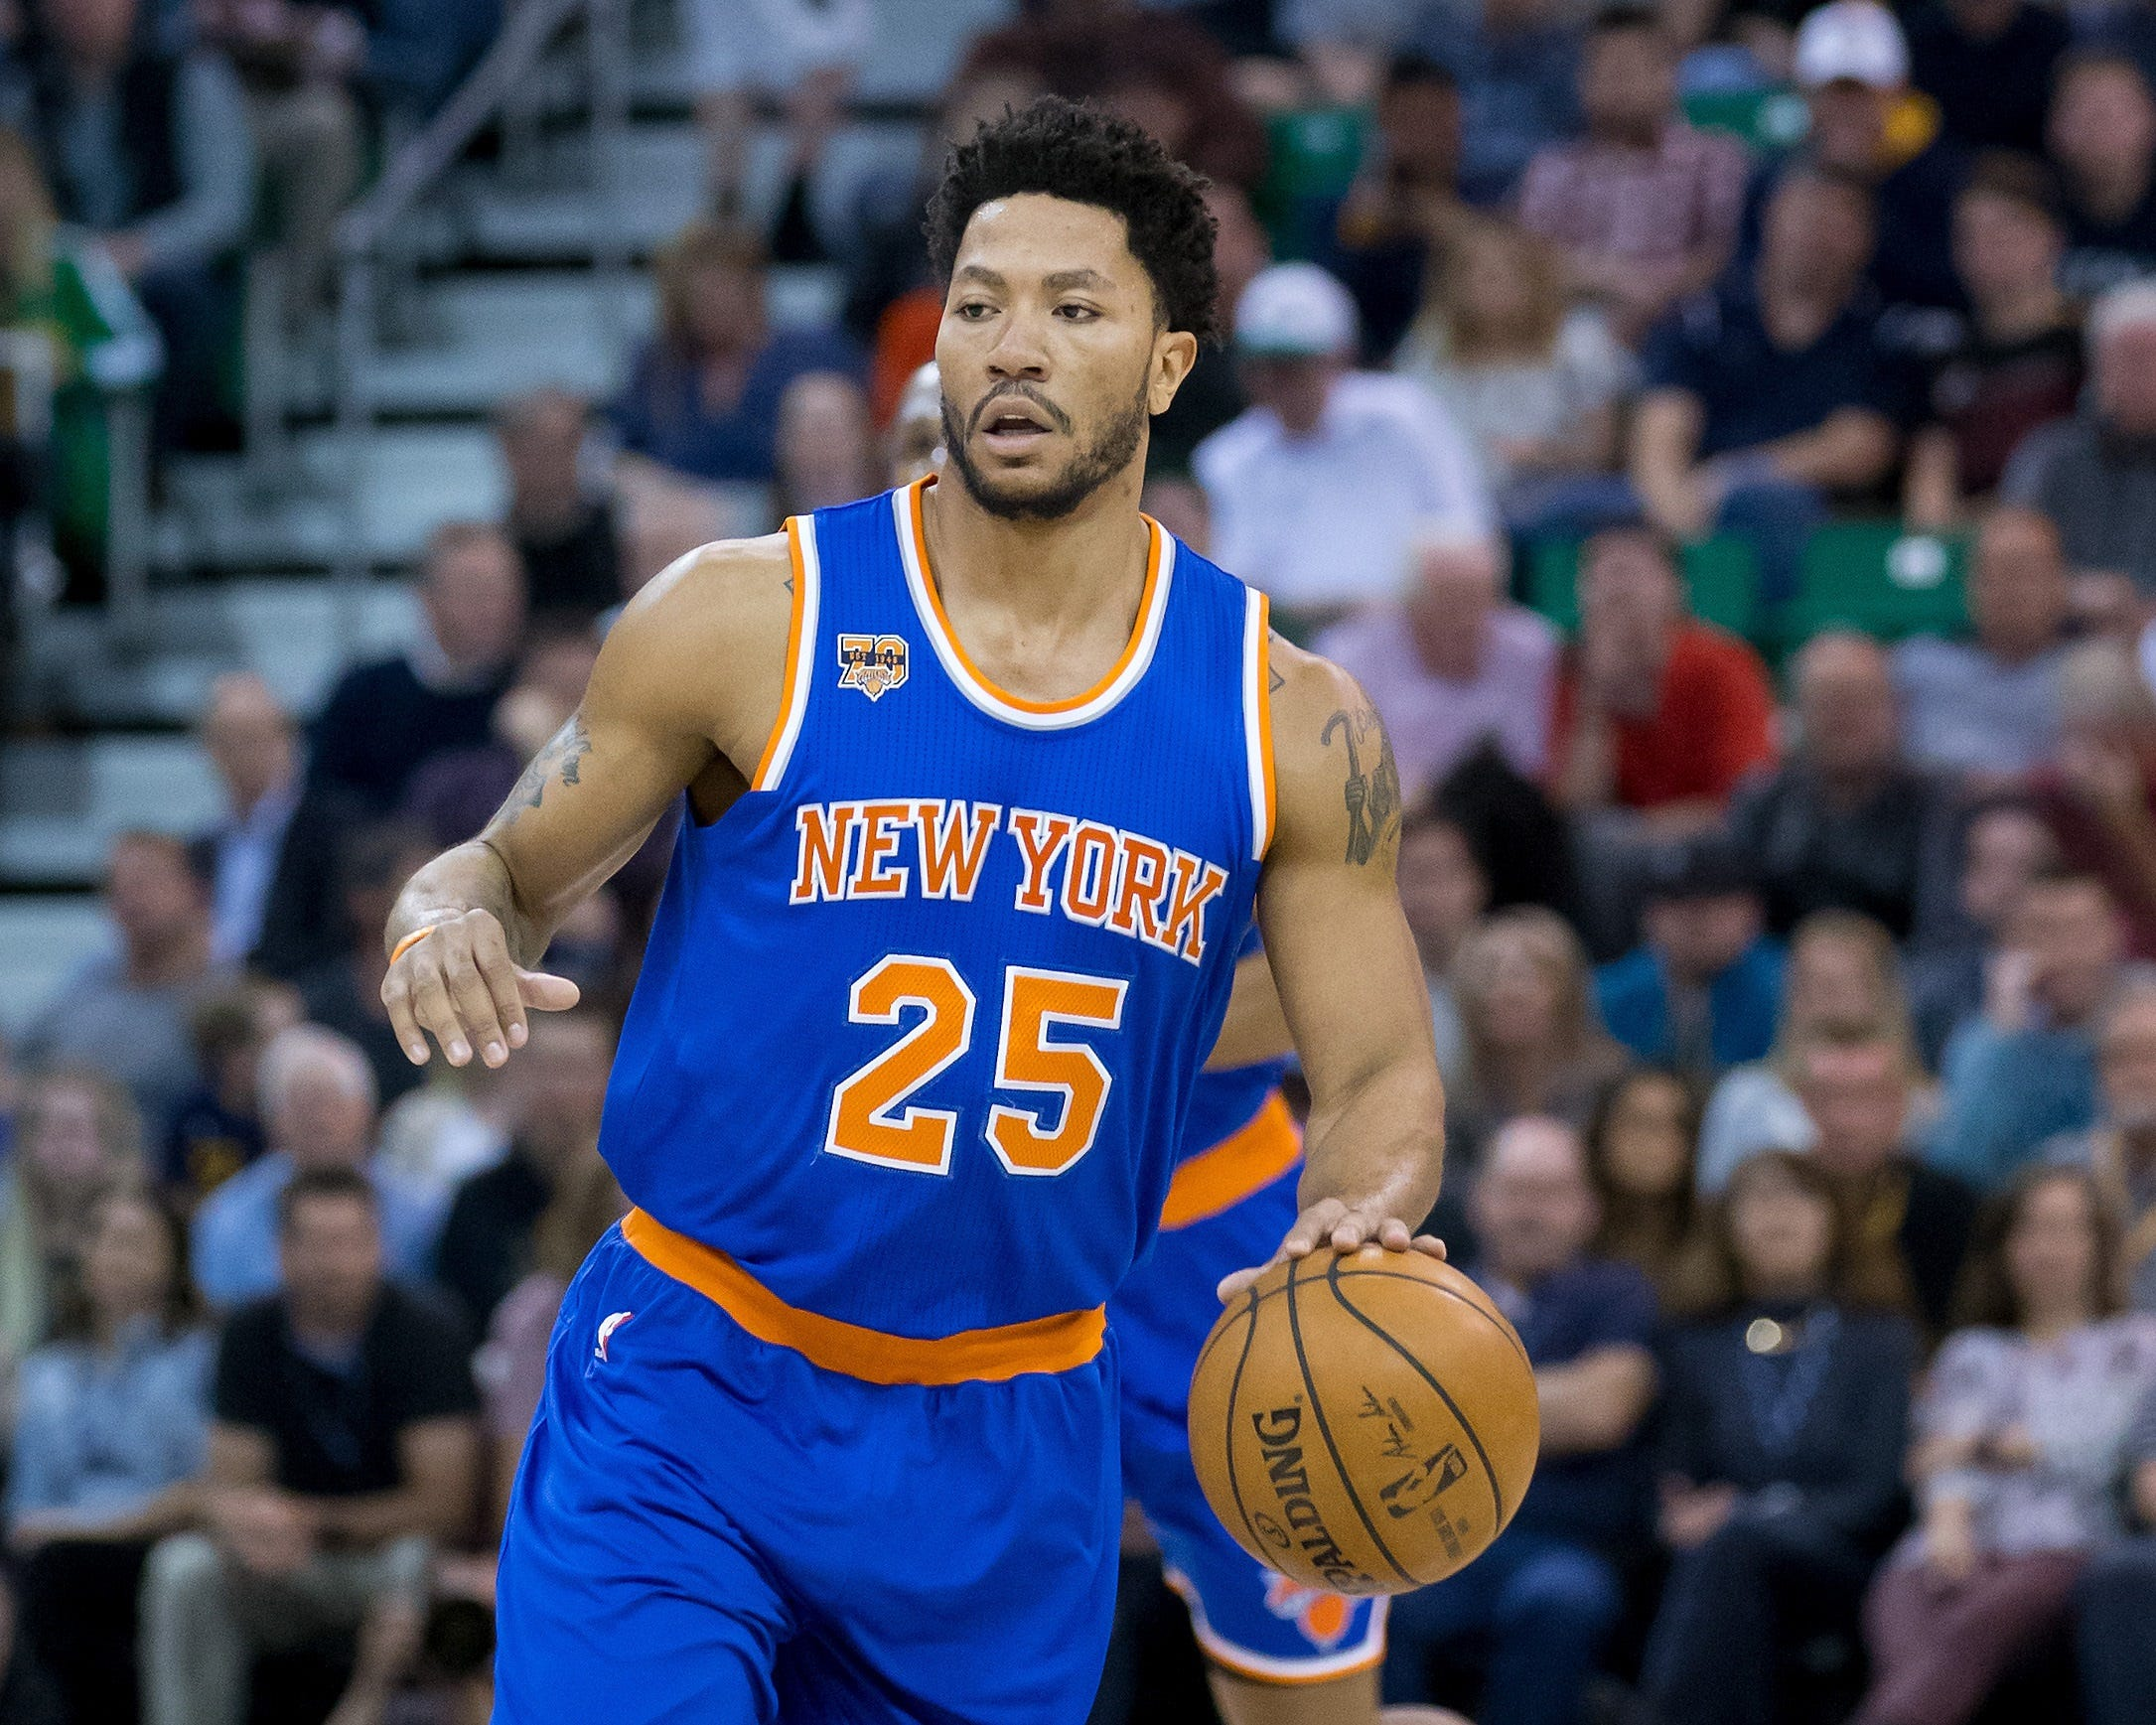 Cavaliers sign former NBA MVP Derrick Rose to one-year contract